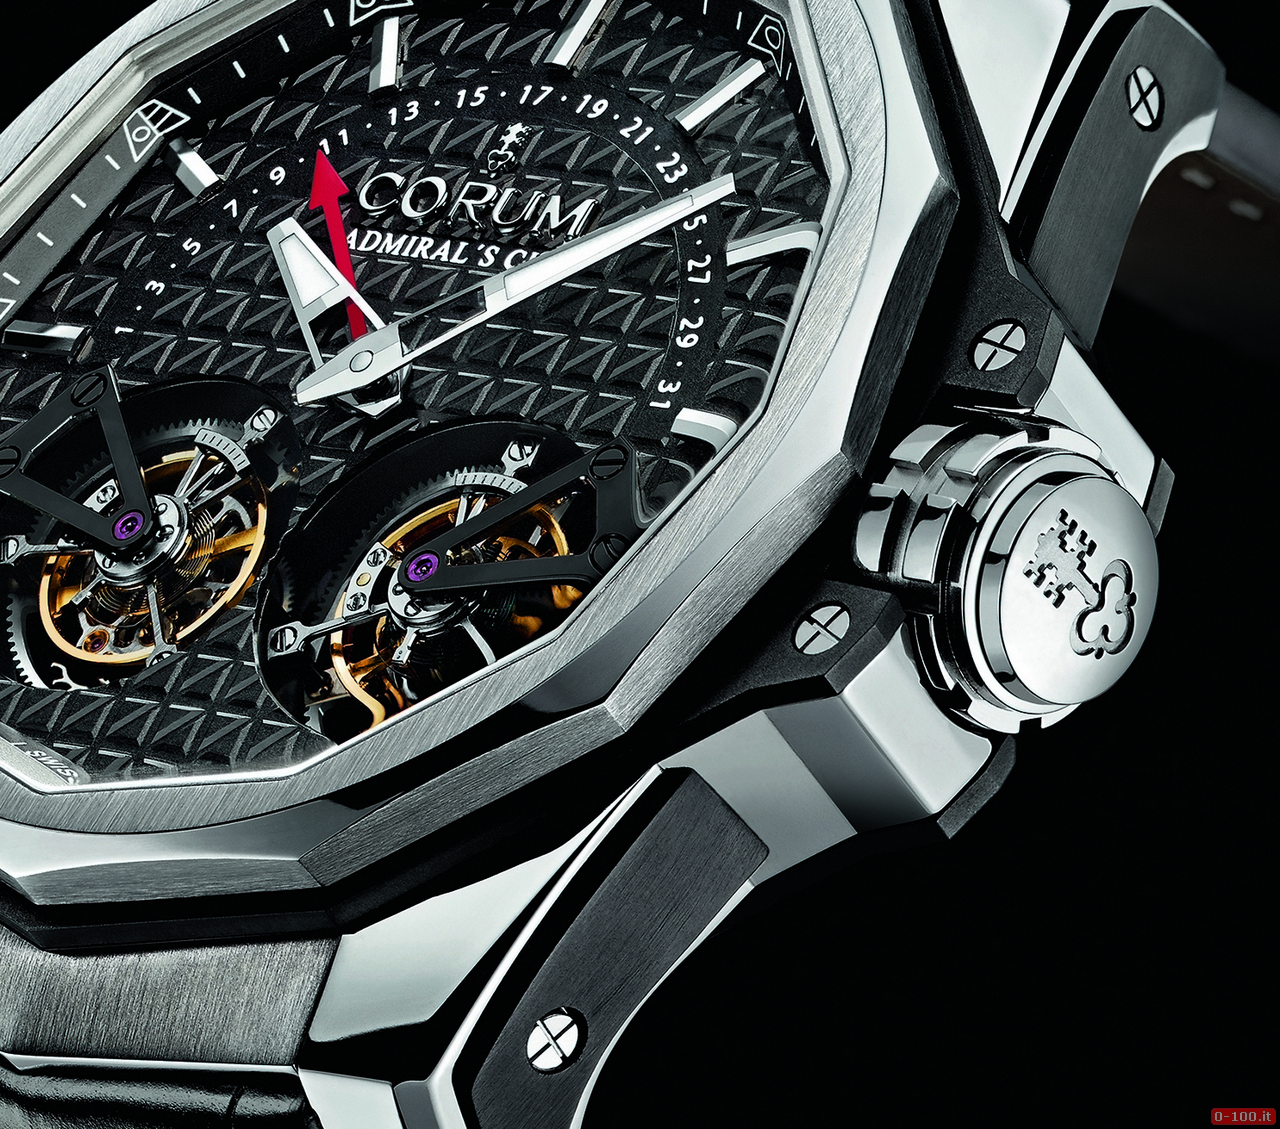 anteprima-baselworld-2014-corum-admirals-cup-ac-one-45-double-tourbillon_0-1002